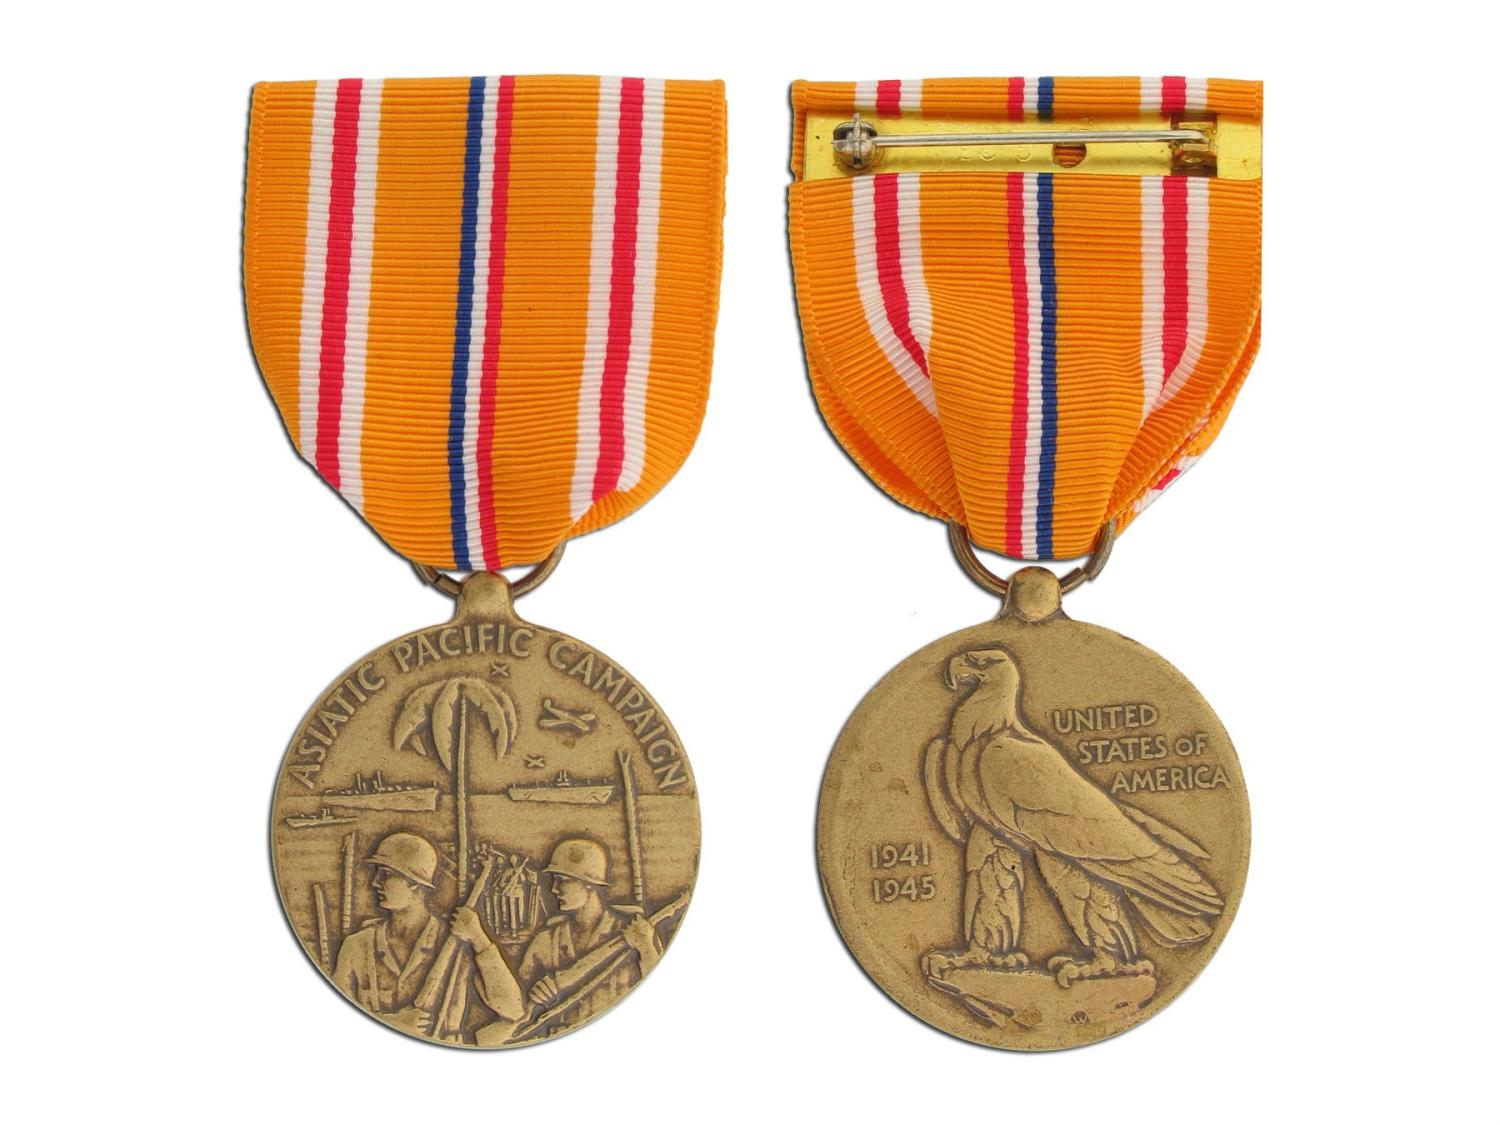 Asia Pacific Campaign Medal - Large